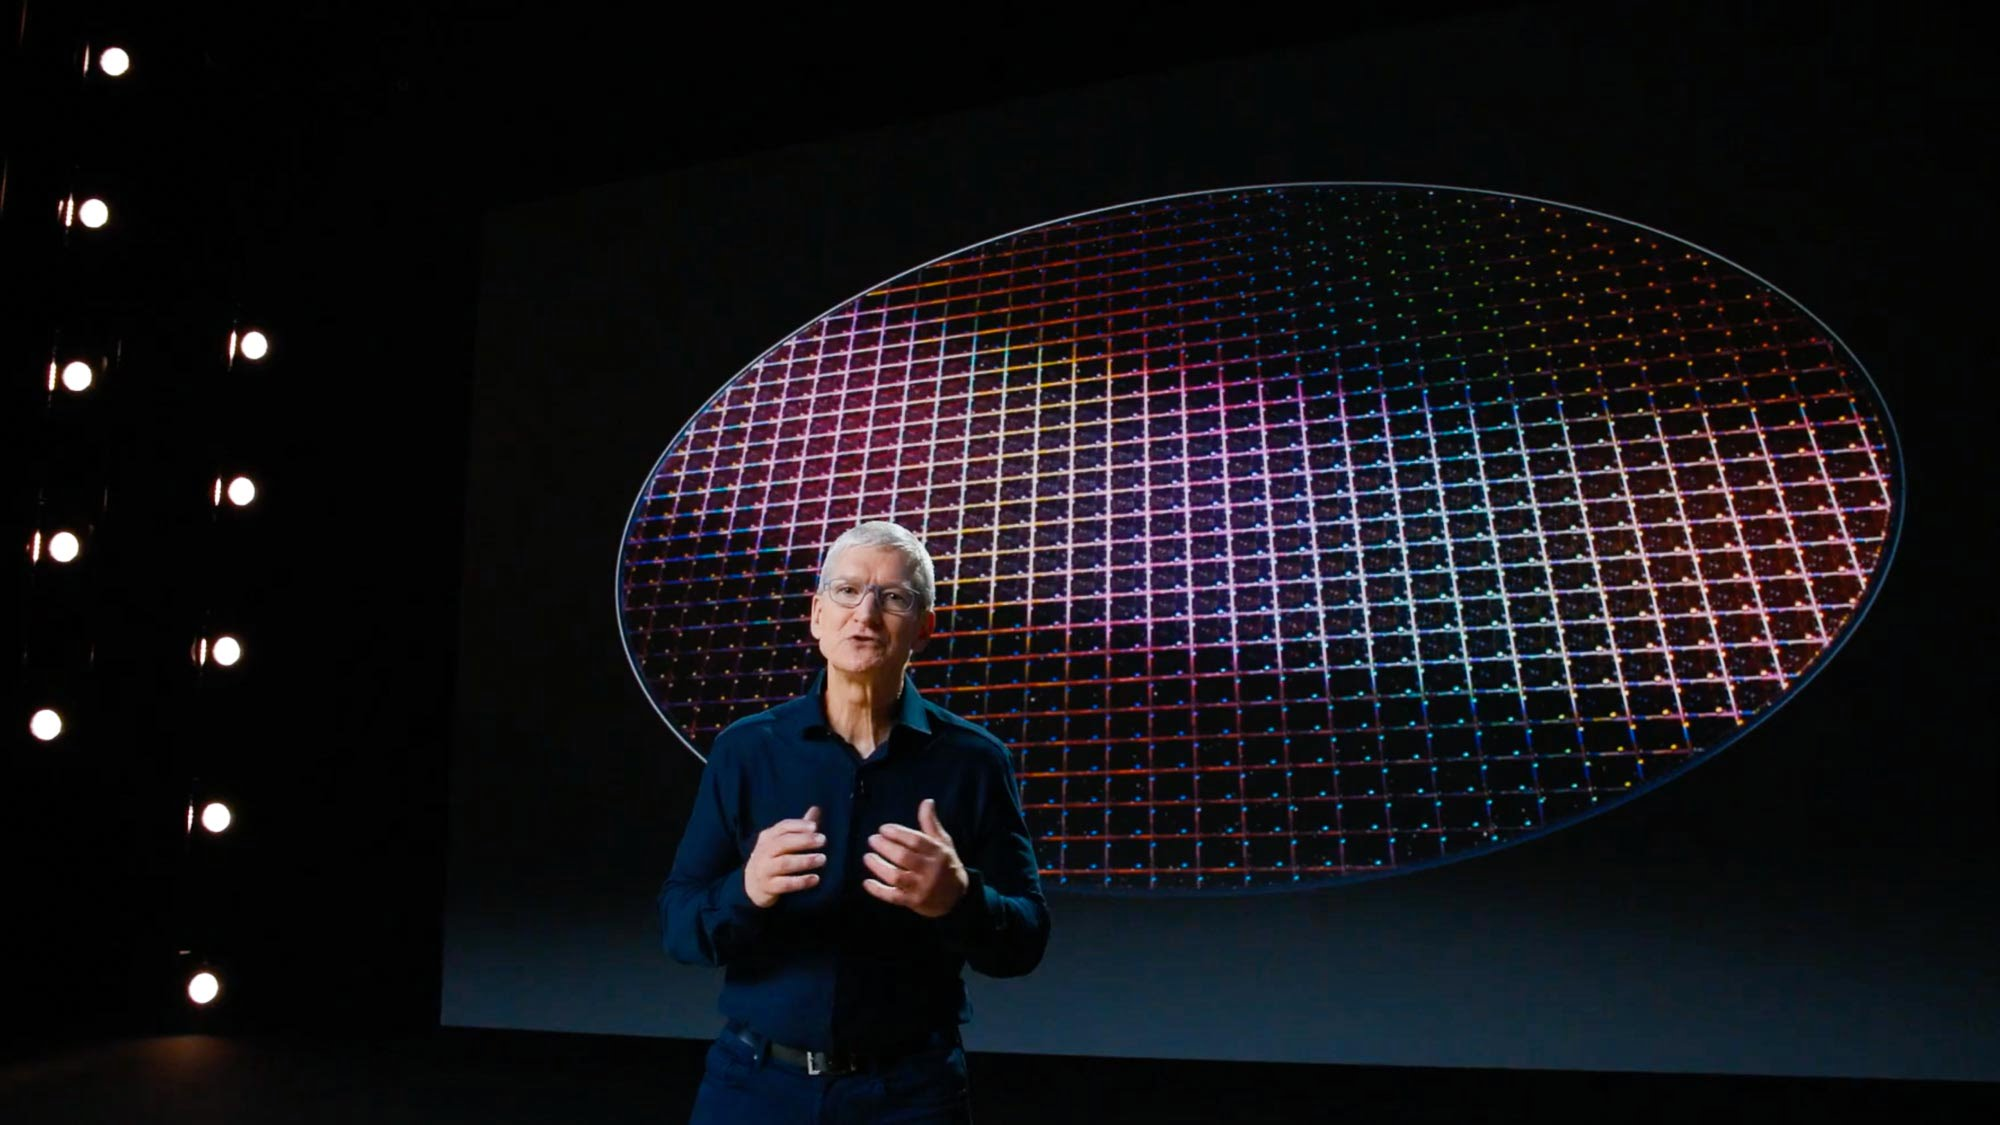 Microsoft gives a Surface Pro 4 to Tim Cook during a development forum